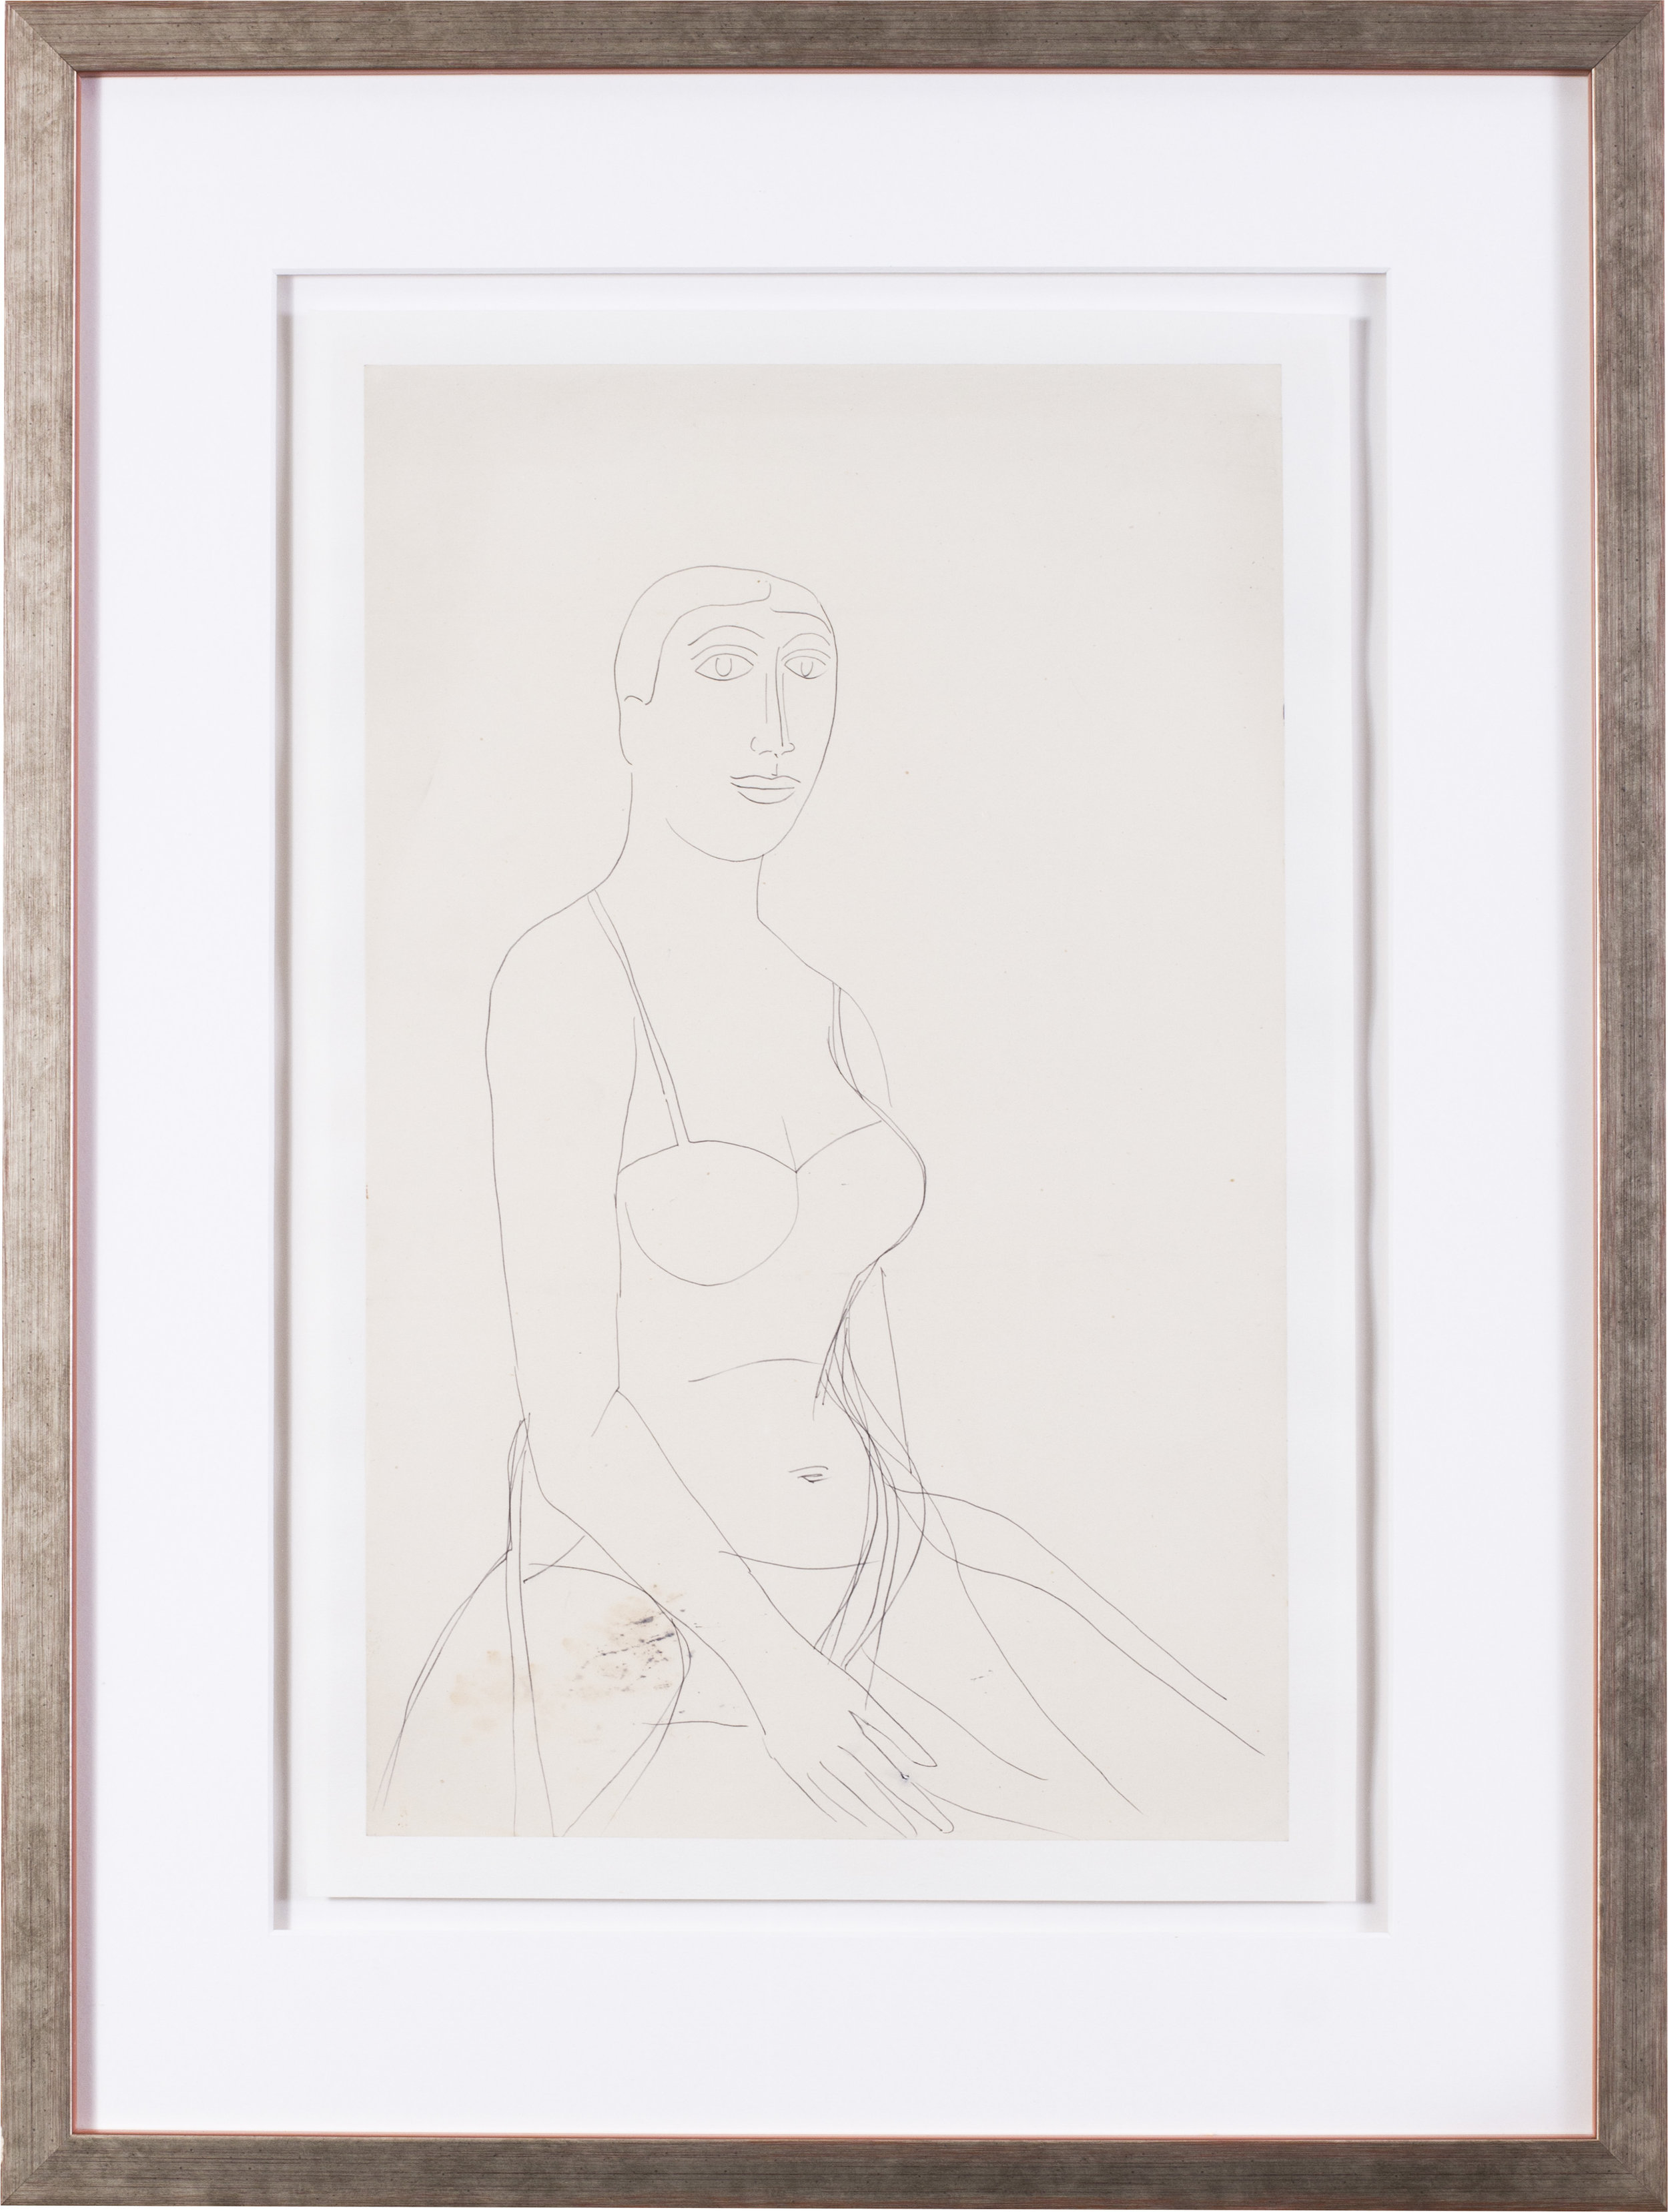 The artist's model   Pen on paper  15.3/4 x 9.7/8 in. (40 x 25 cm.)  Provenance: The artist's wife Maria, Nee Figueiredo, gifted to her nephew   £2,800